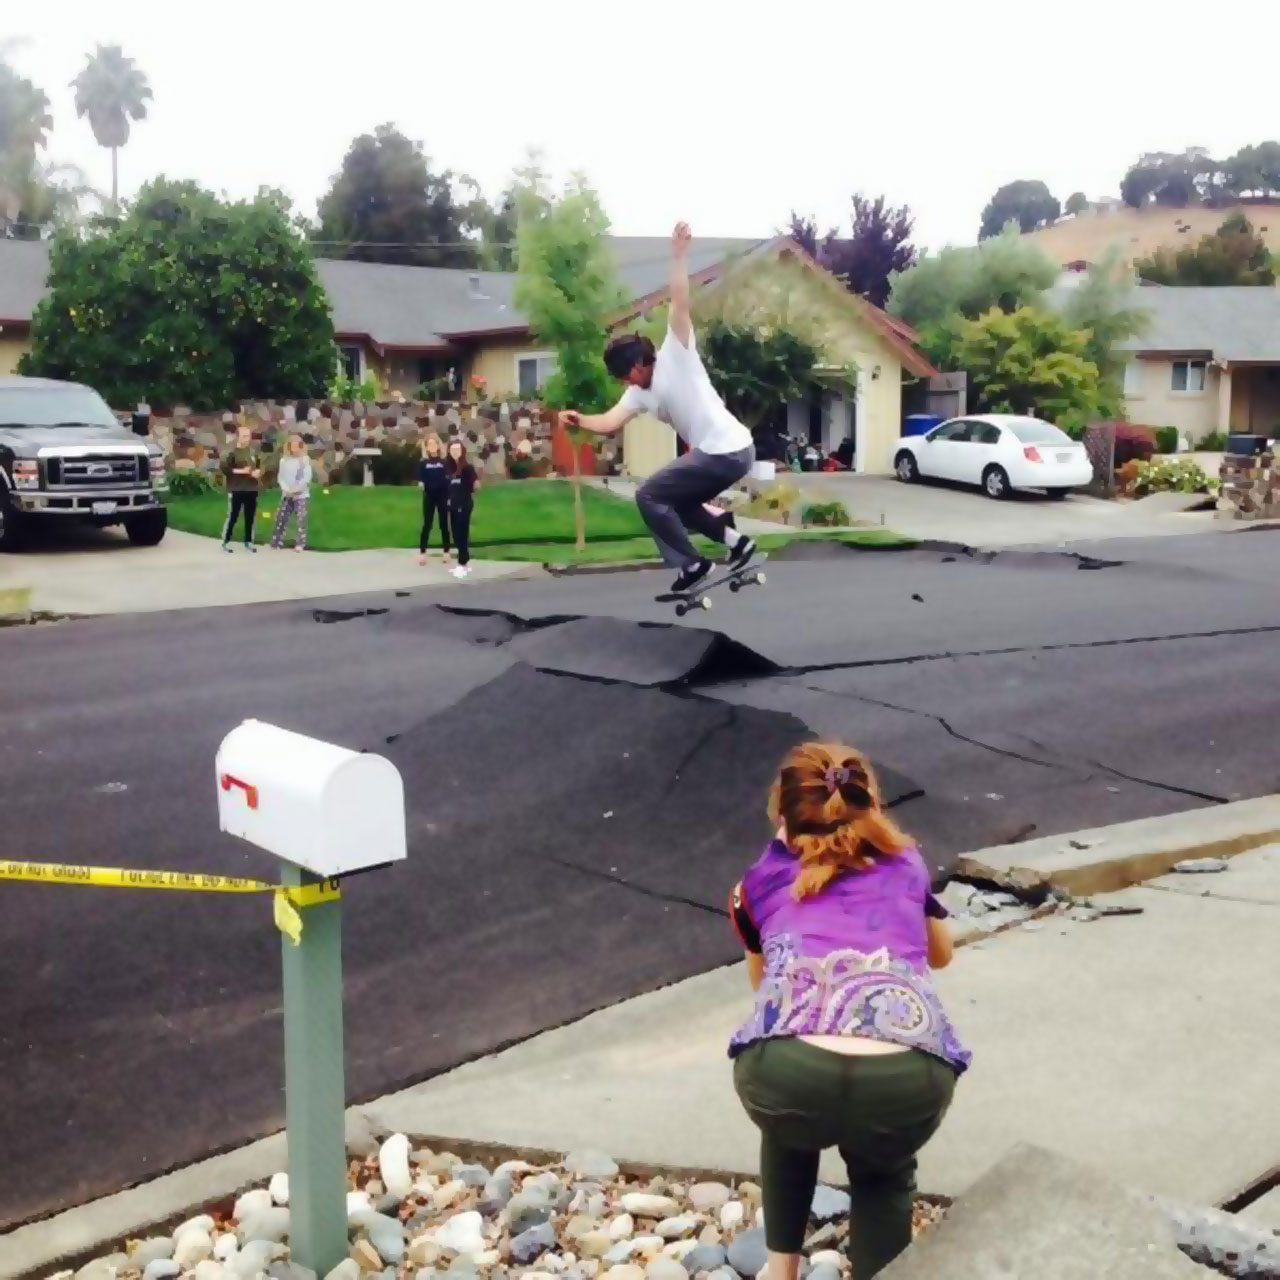 Skateboard ramp made by Napa, California earthquake